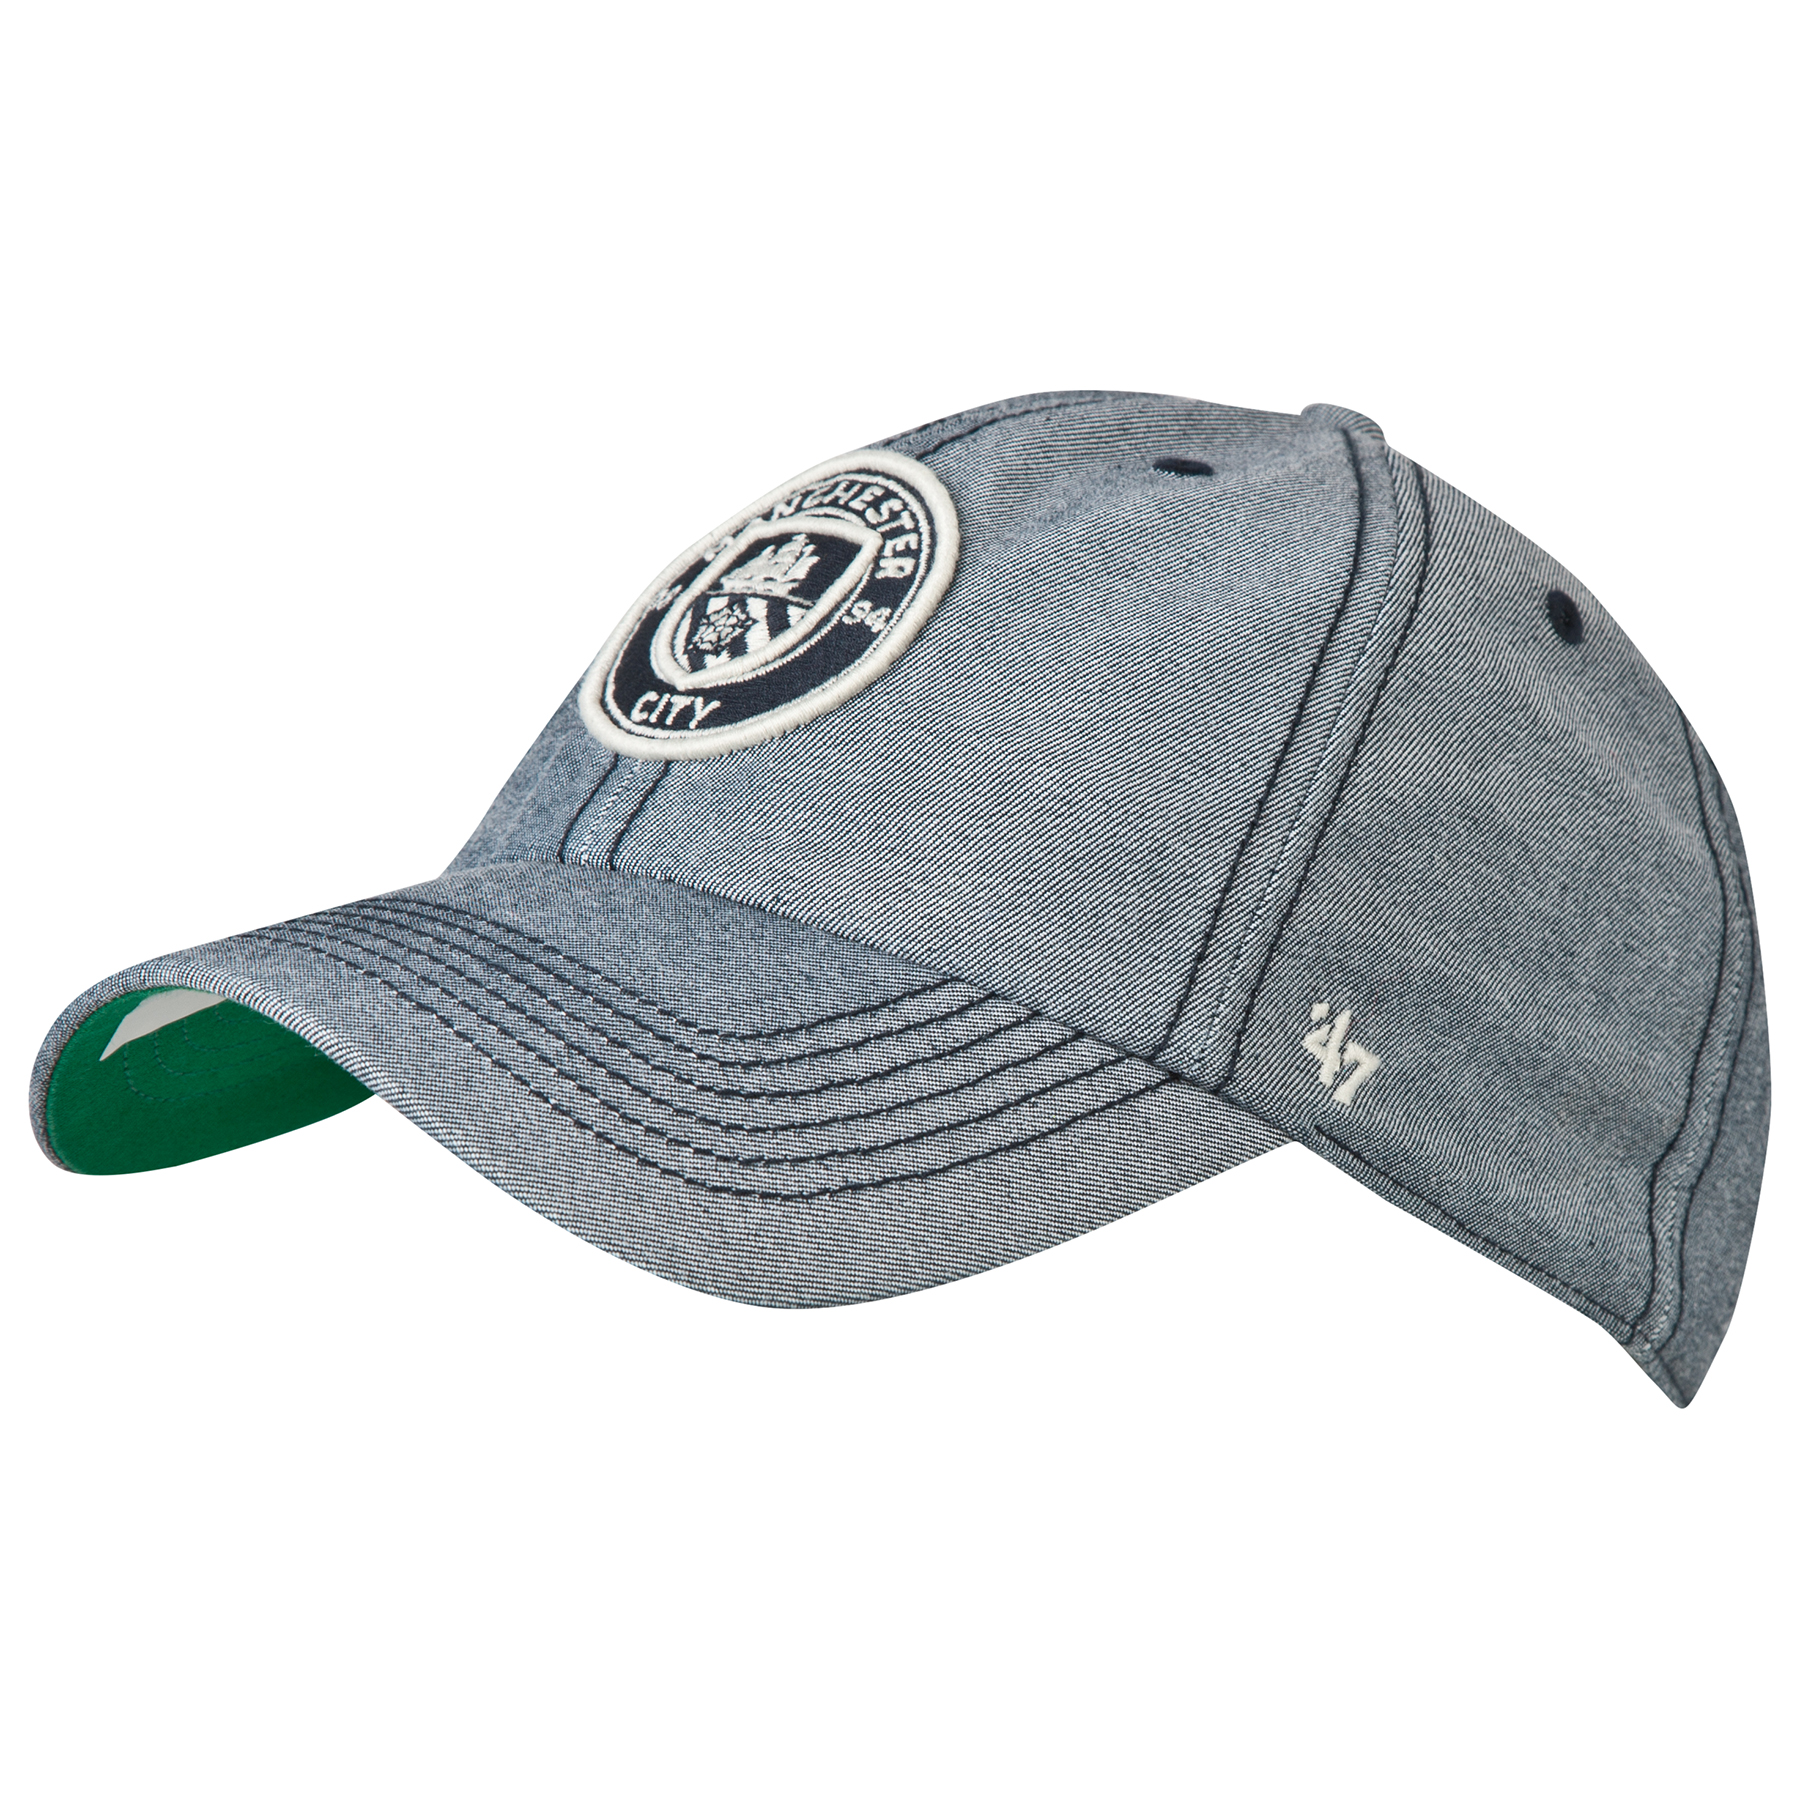 Manchester City 47 Colfax Cap - Chambray